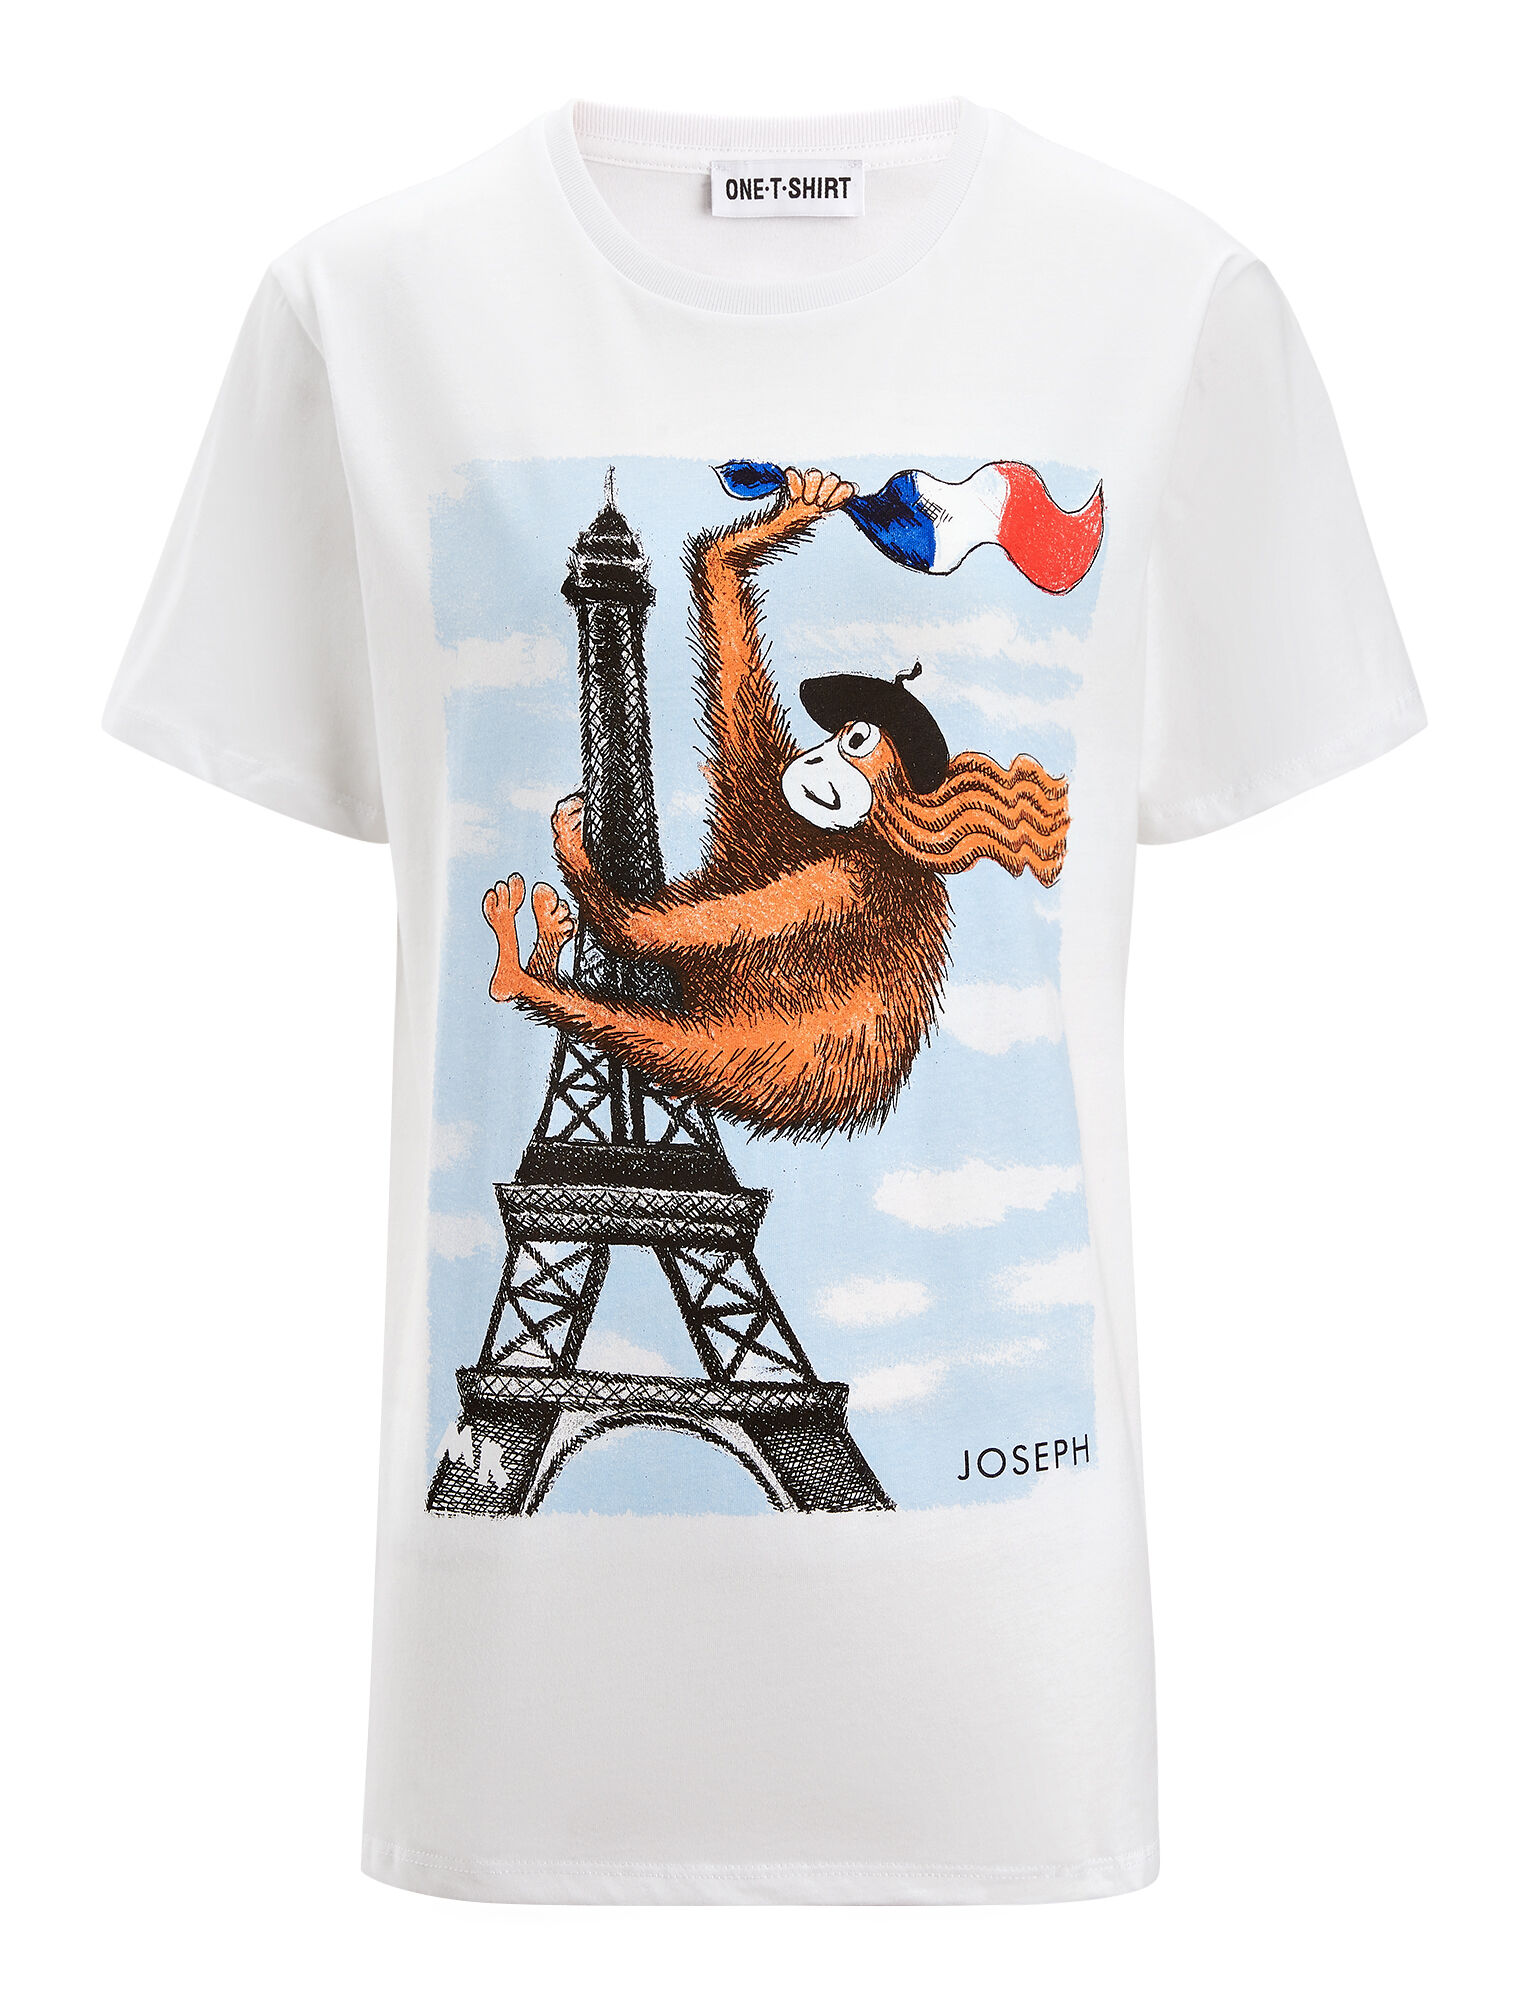 Joseph, GingerNutz Tower + Flag Tee, in WHITE